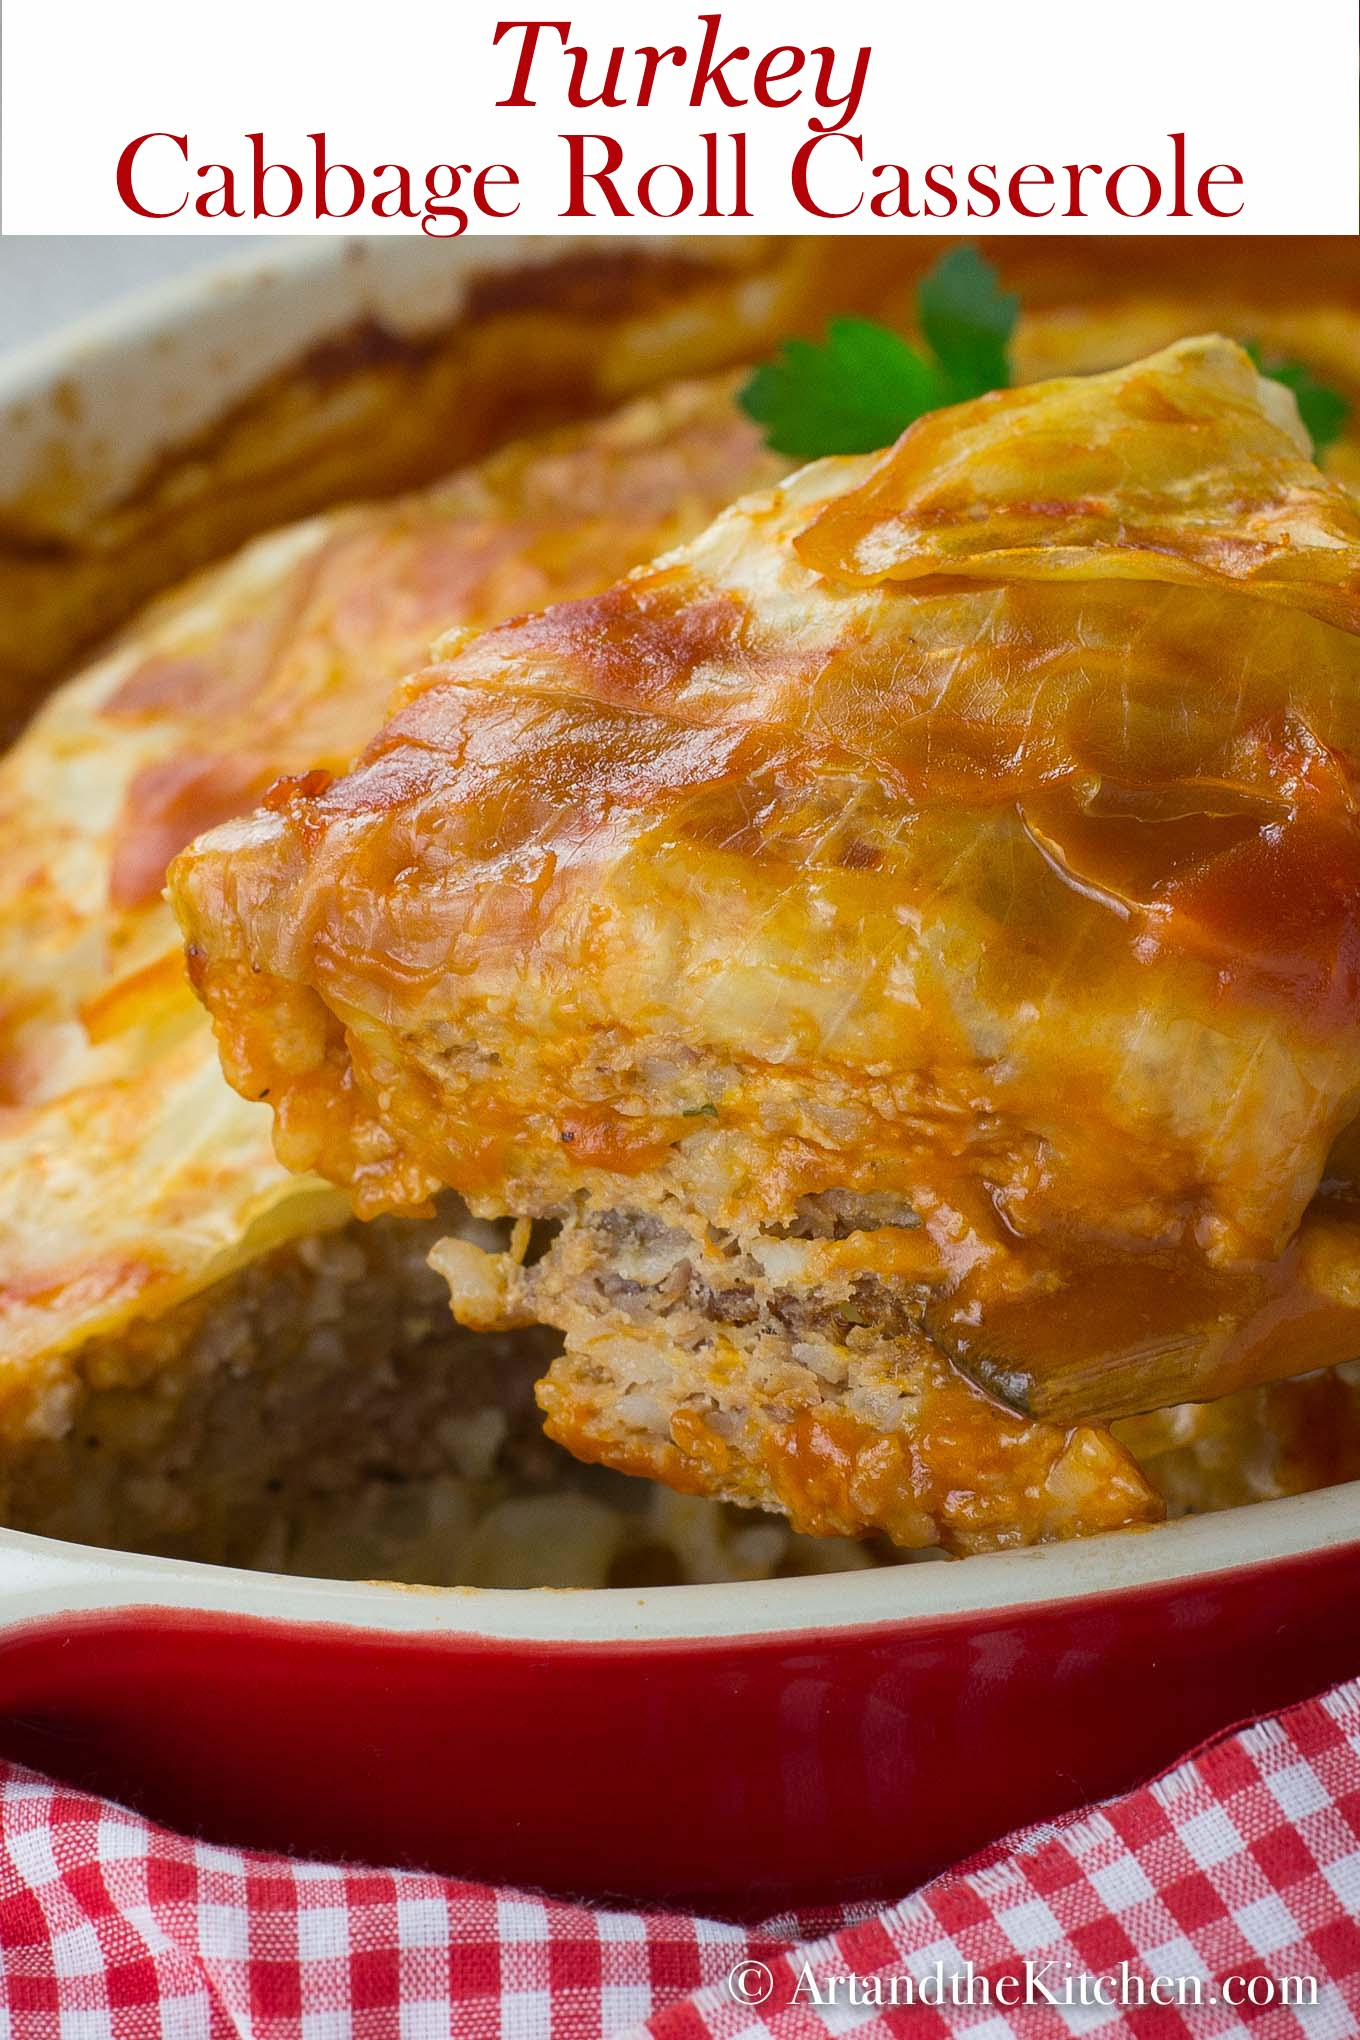 Turkey Cabbage Roll Casserole, get the flavor without the hard work of rolling cabbage rolls. Made with lean ground turkey! via @artandthekitch